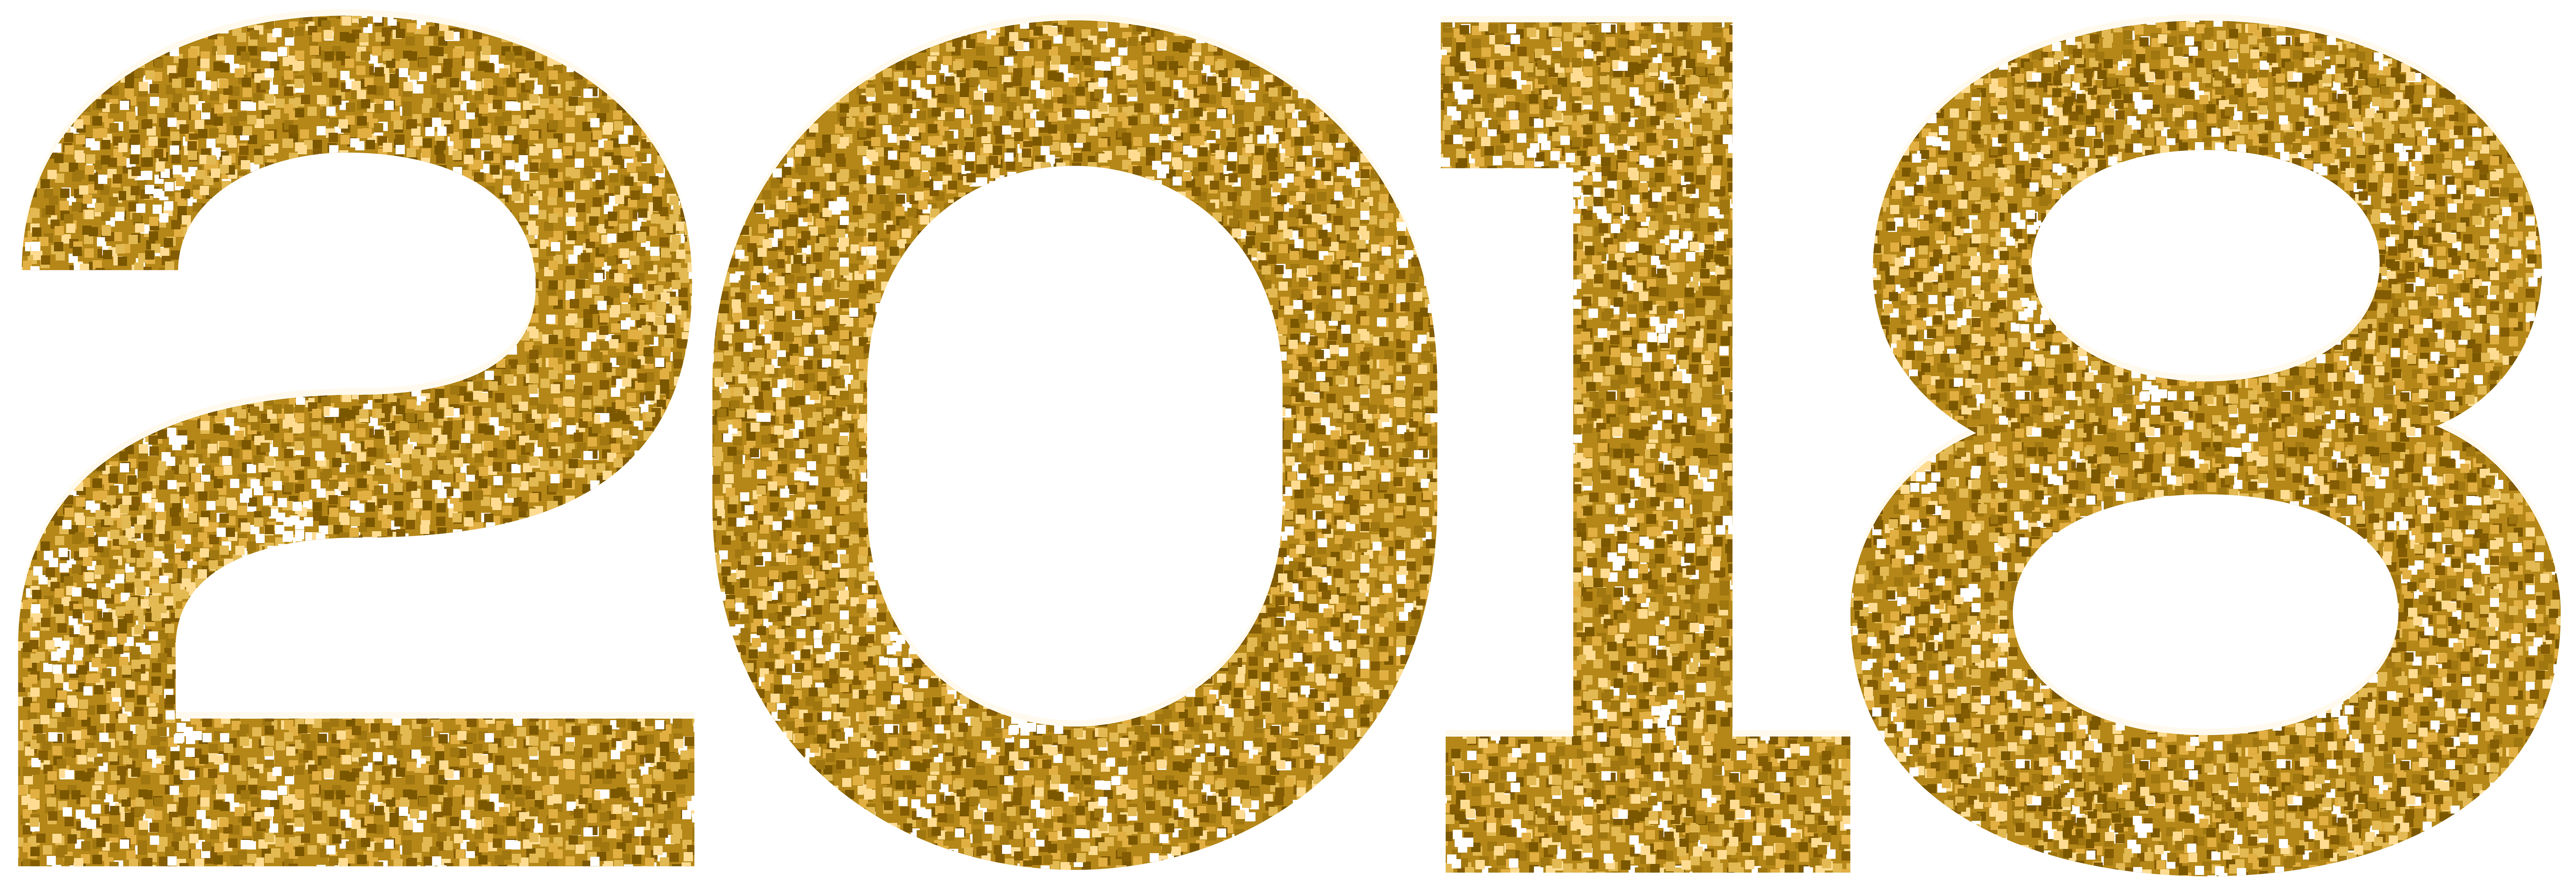 2018 Gold Clip Art PNG Image.